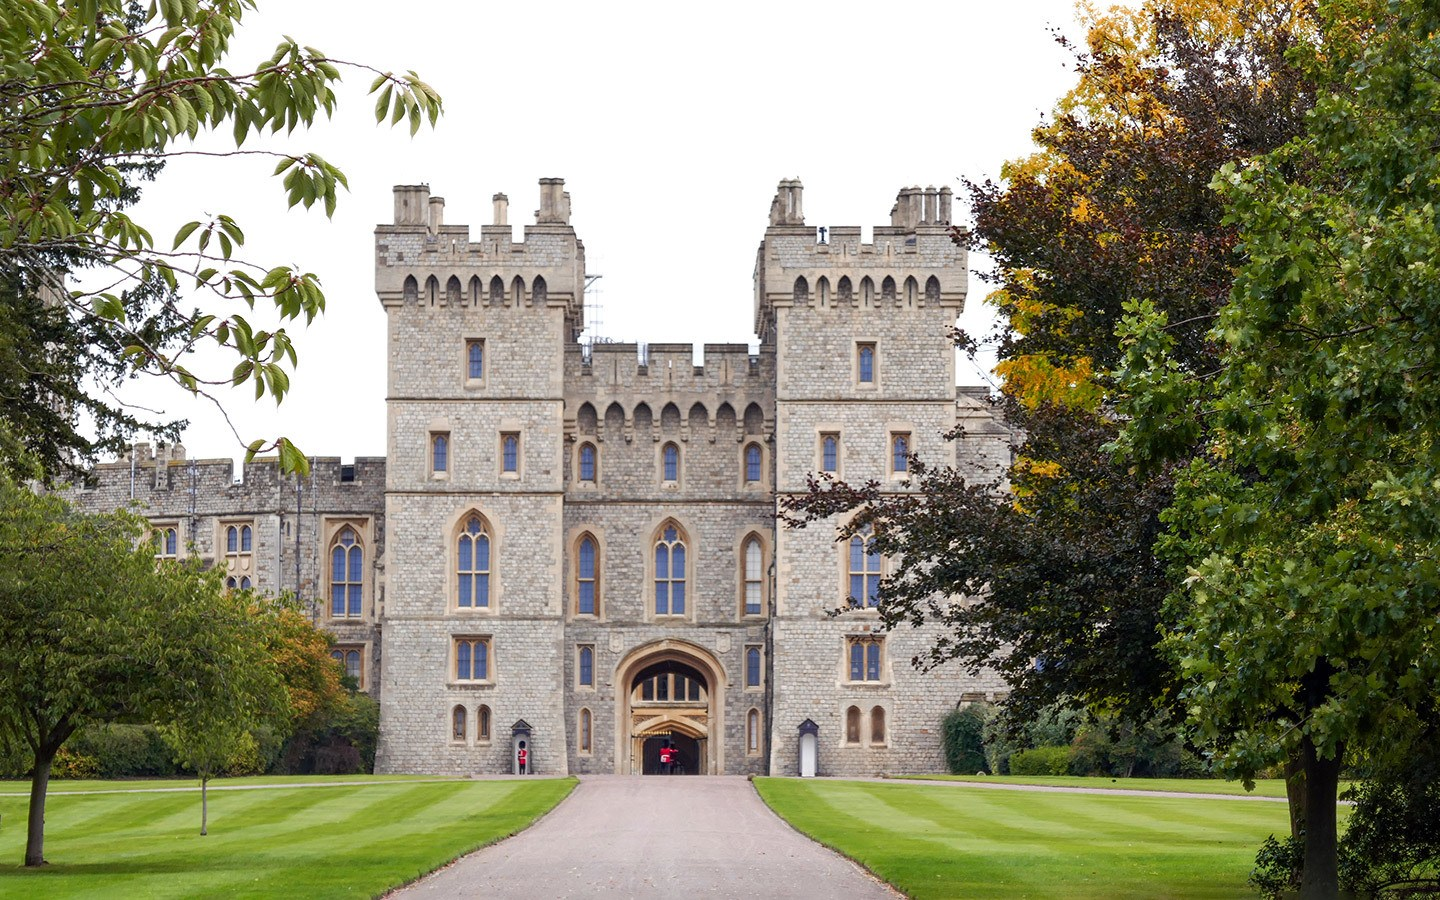 Windsor Castle from the George IV Gate in Windsor Great park